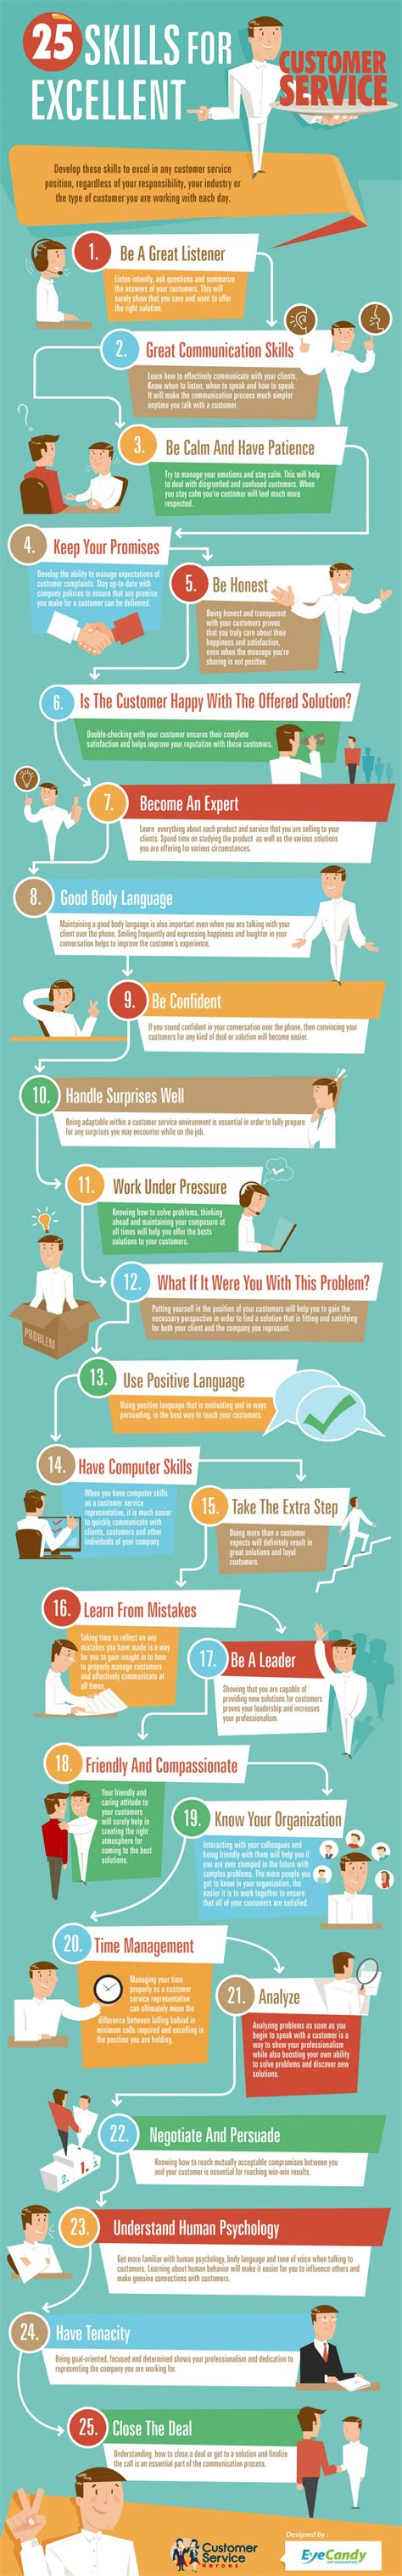 25 Skills For Excellent Customer Service Visually